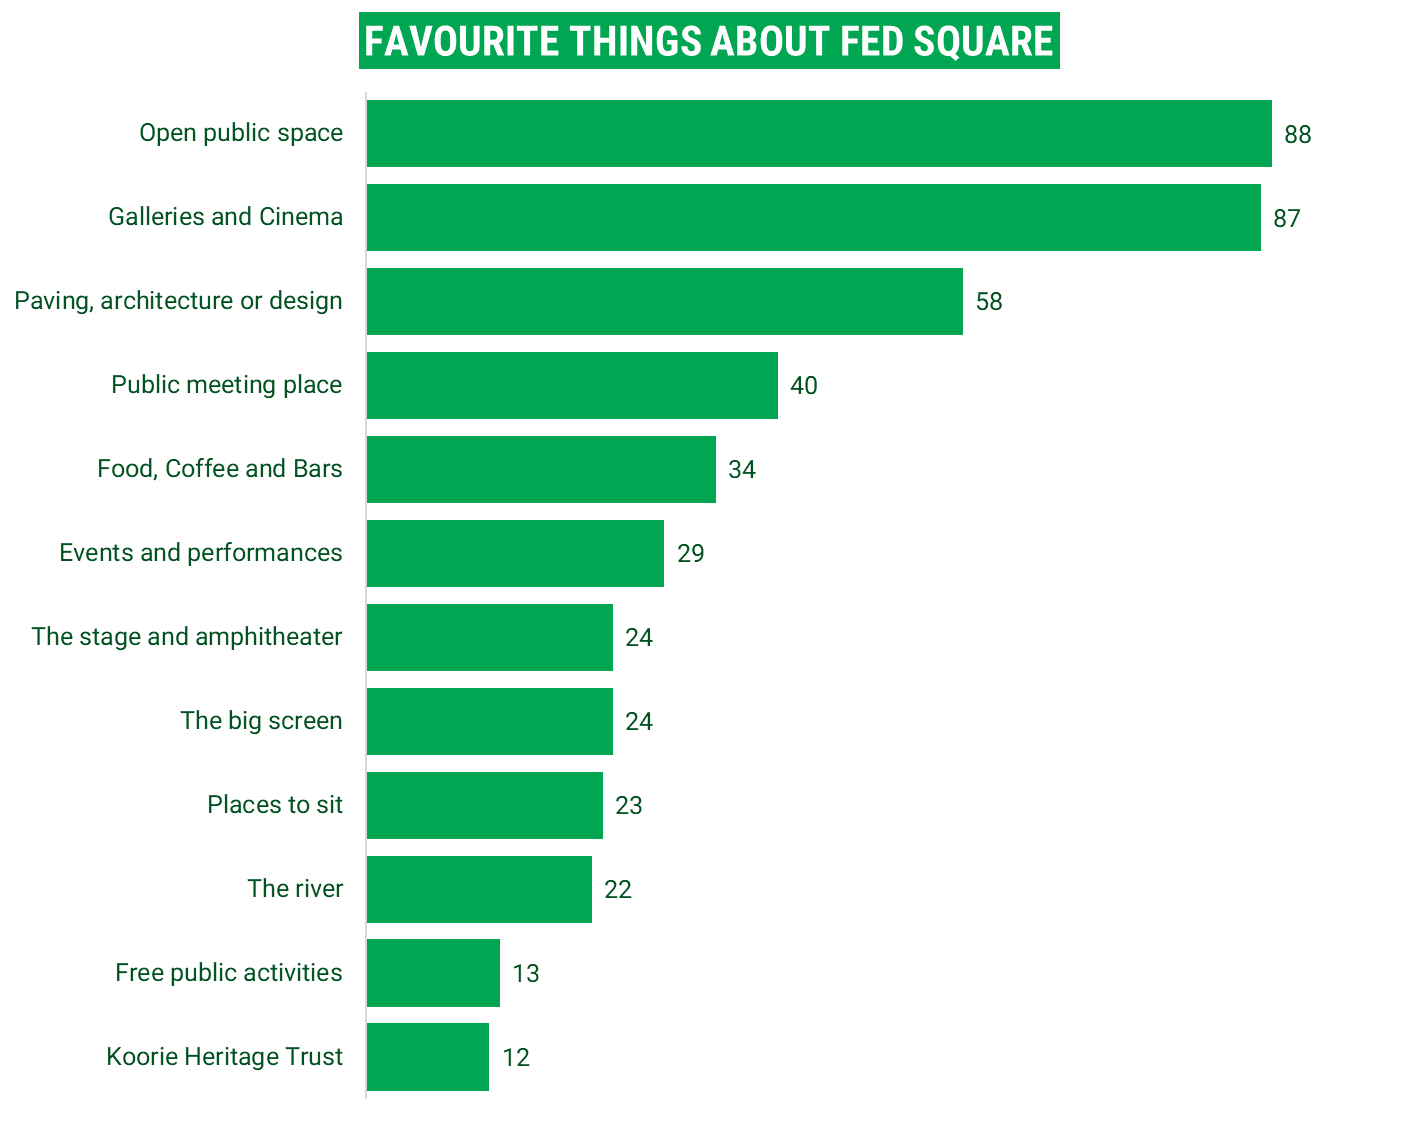 Graph of 12 top favourite things about Fed Square